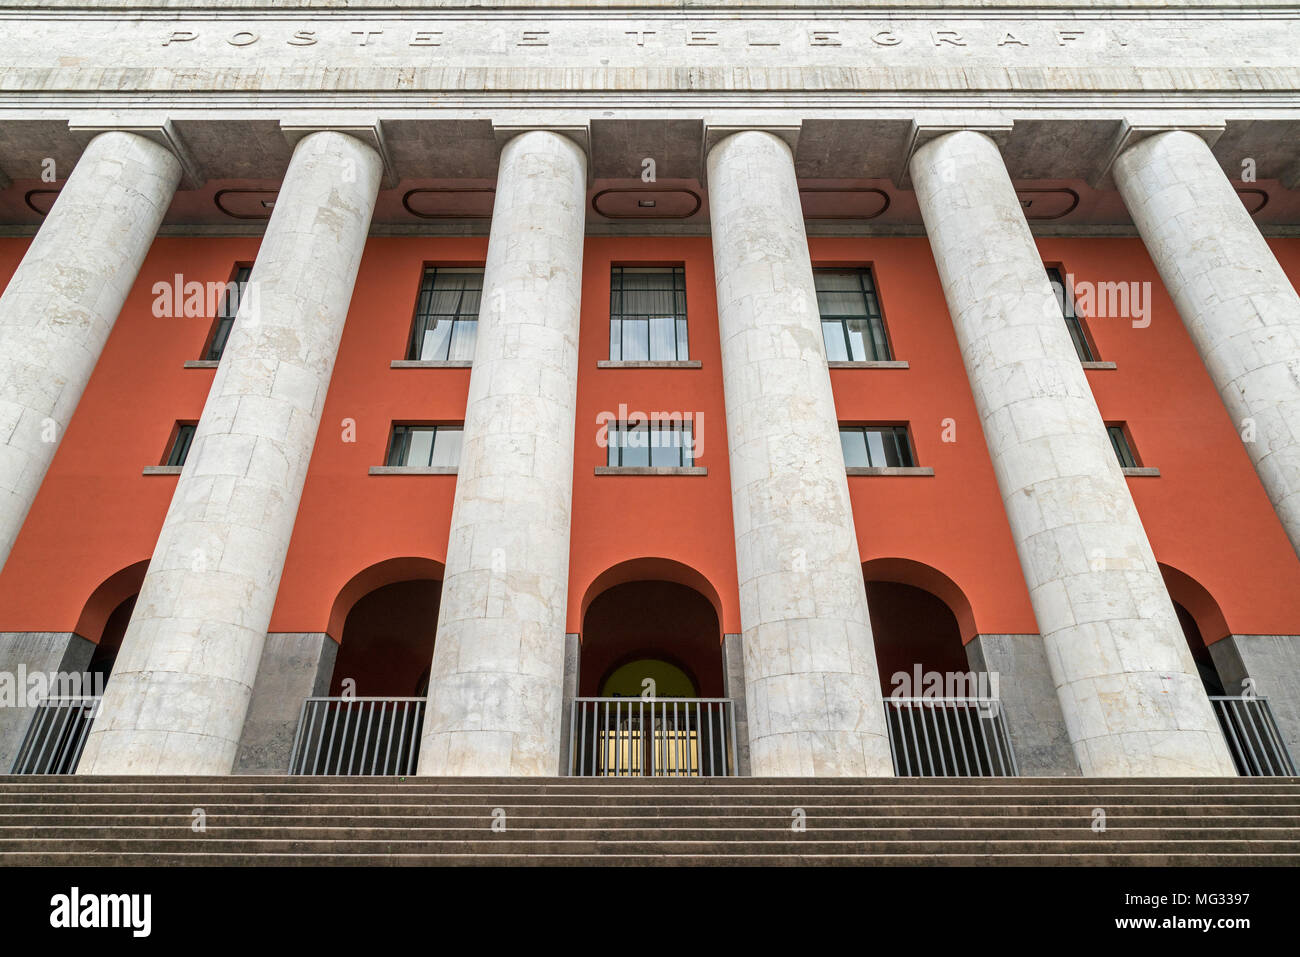 The Post office building, Palazzo delle Poste, Palermo, Sicily, Italy. Stock Photo